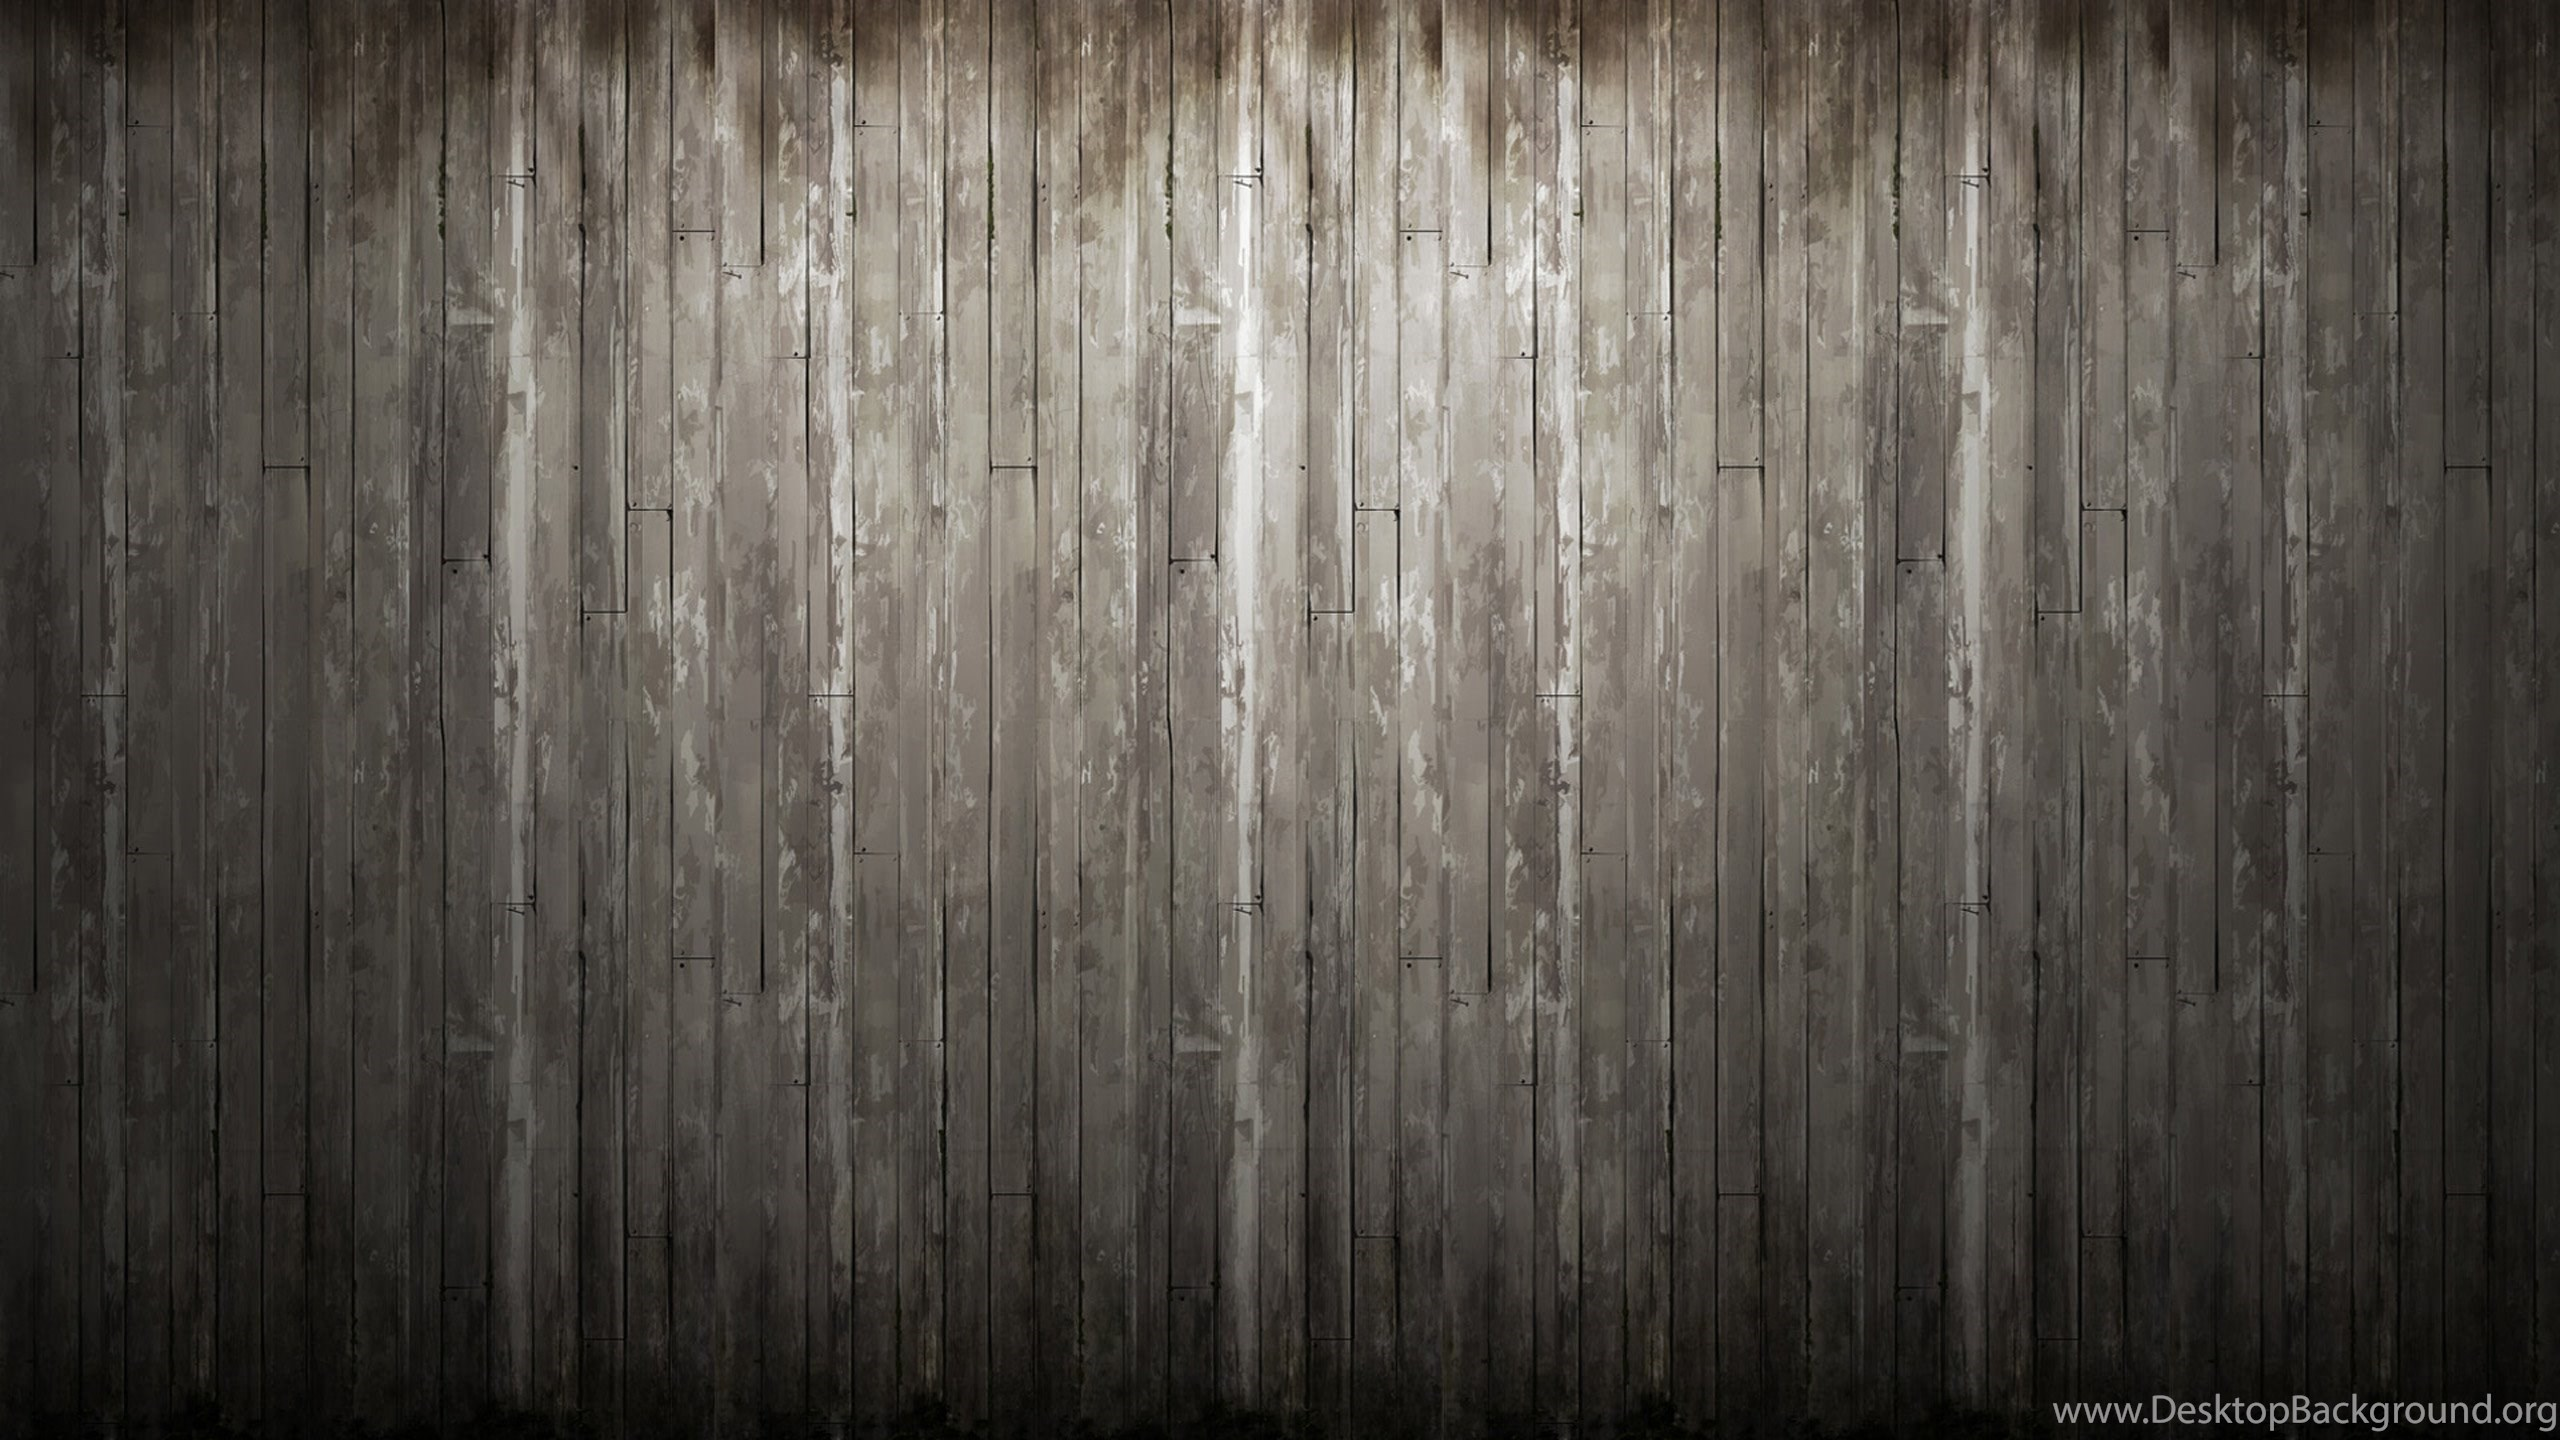 free high resolution backgrounds and textures css author - HD2560×1440